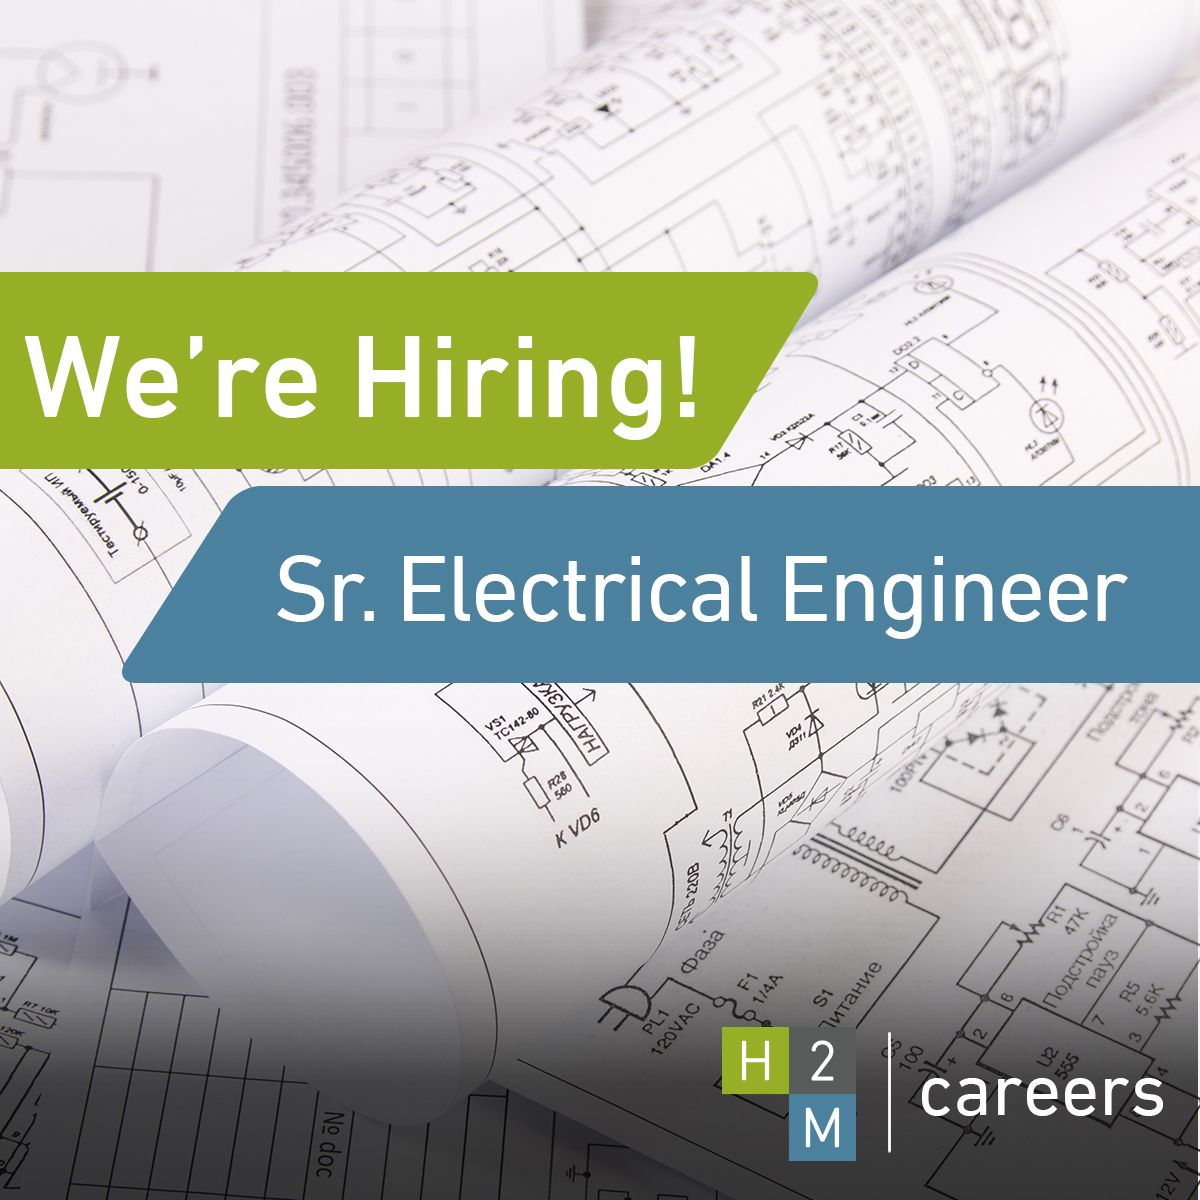 We're hiring a Sr. Electrical Engineer with 6+ years of